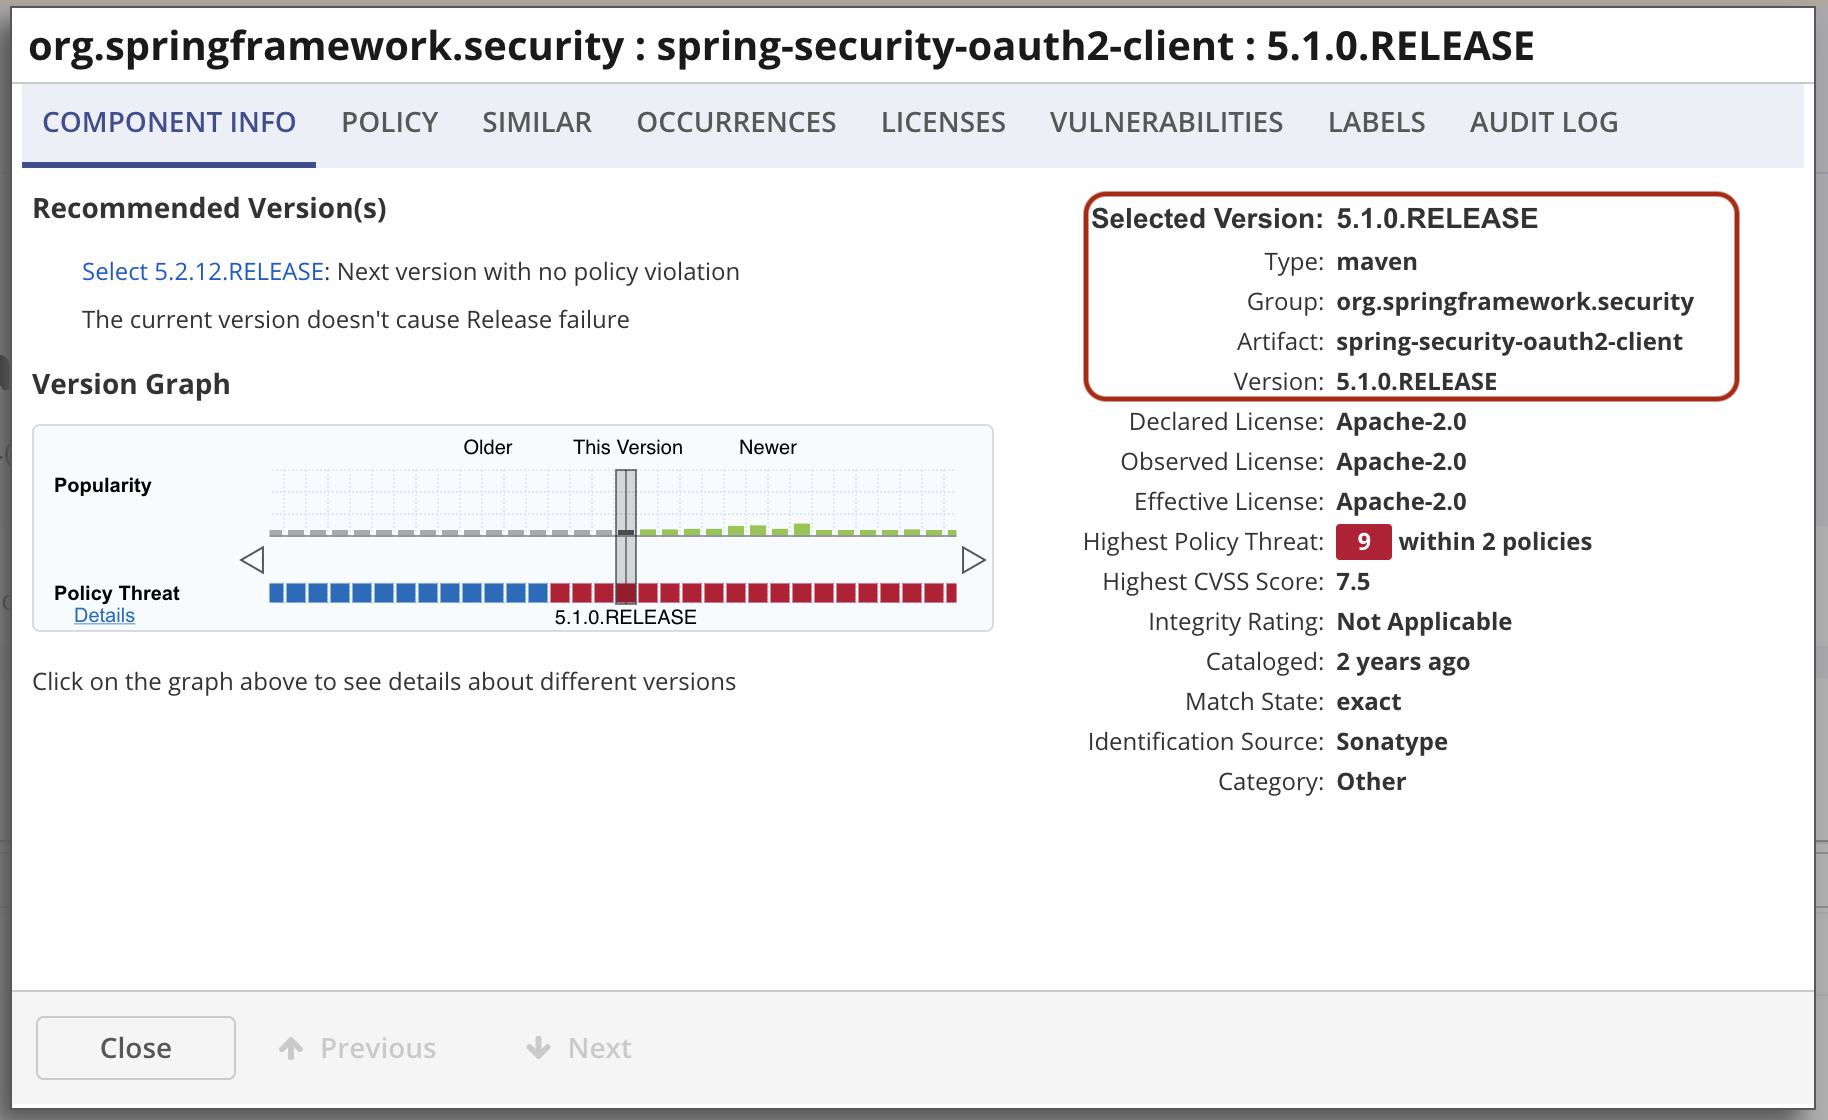 spring-security-oauth2-client version 5.1.0.RELEASE being flagged as vulnerable